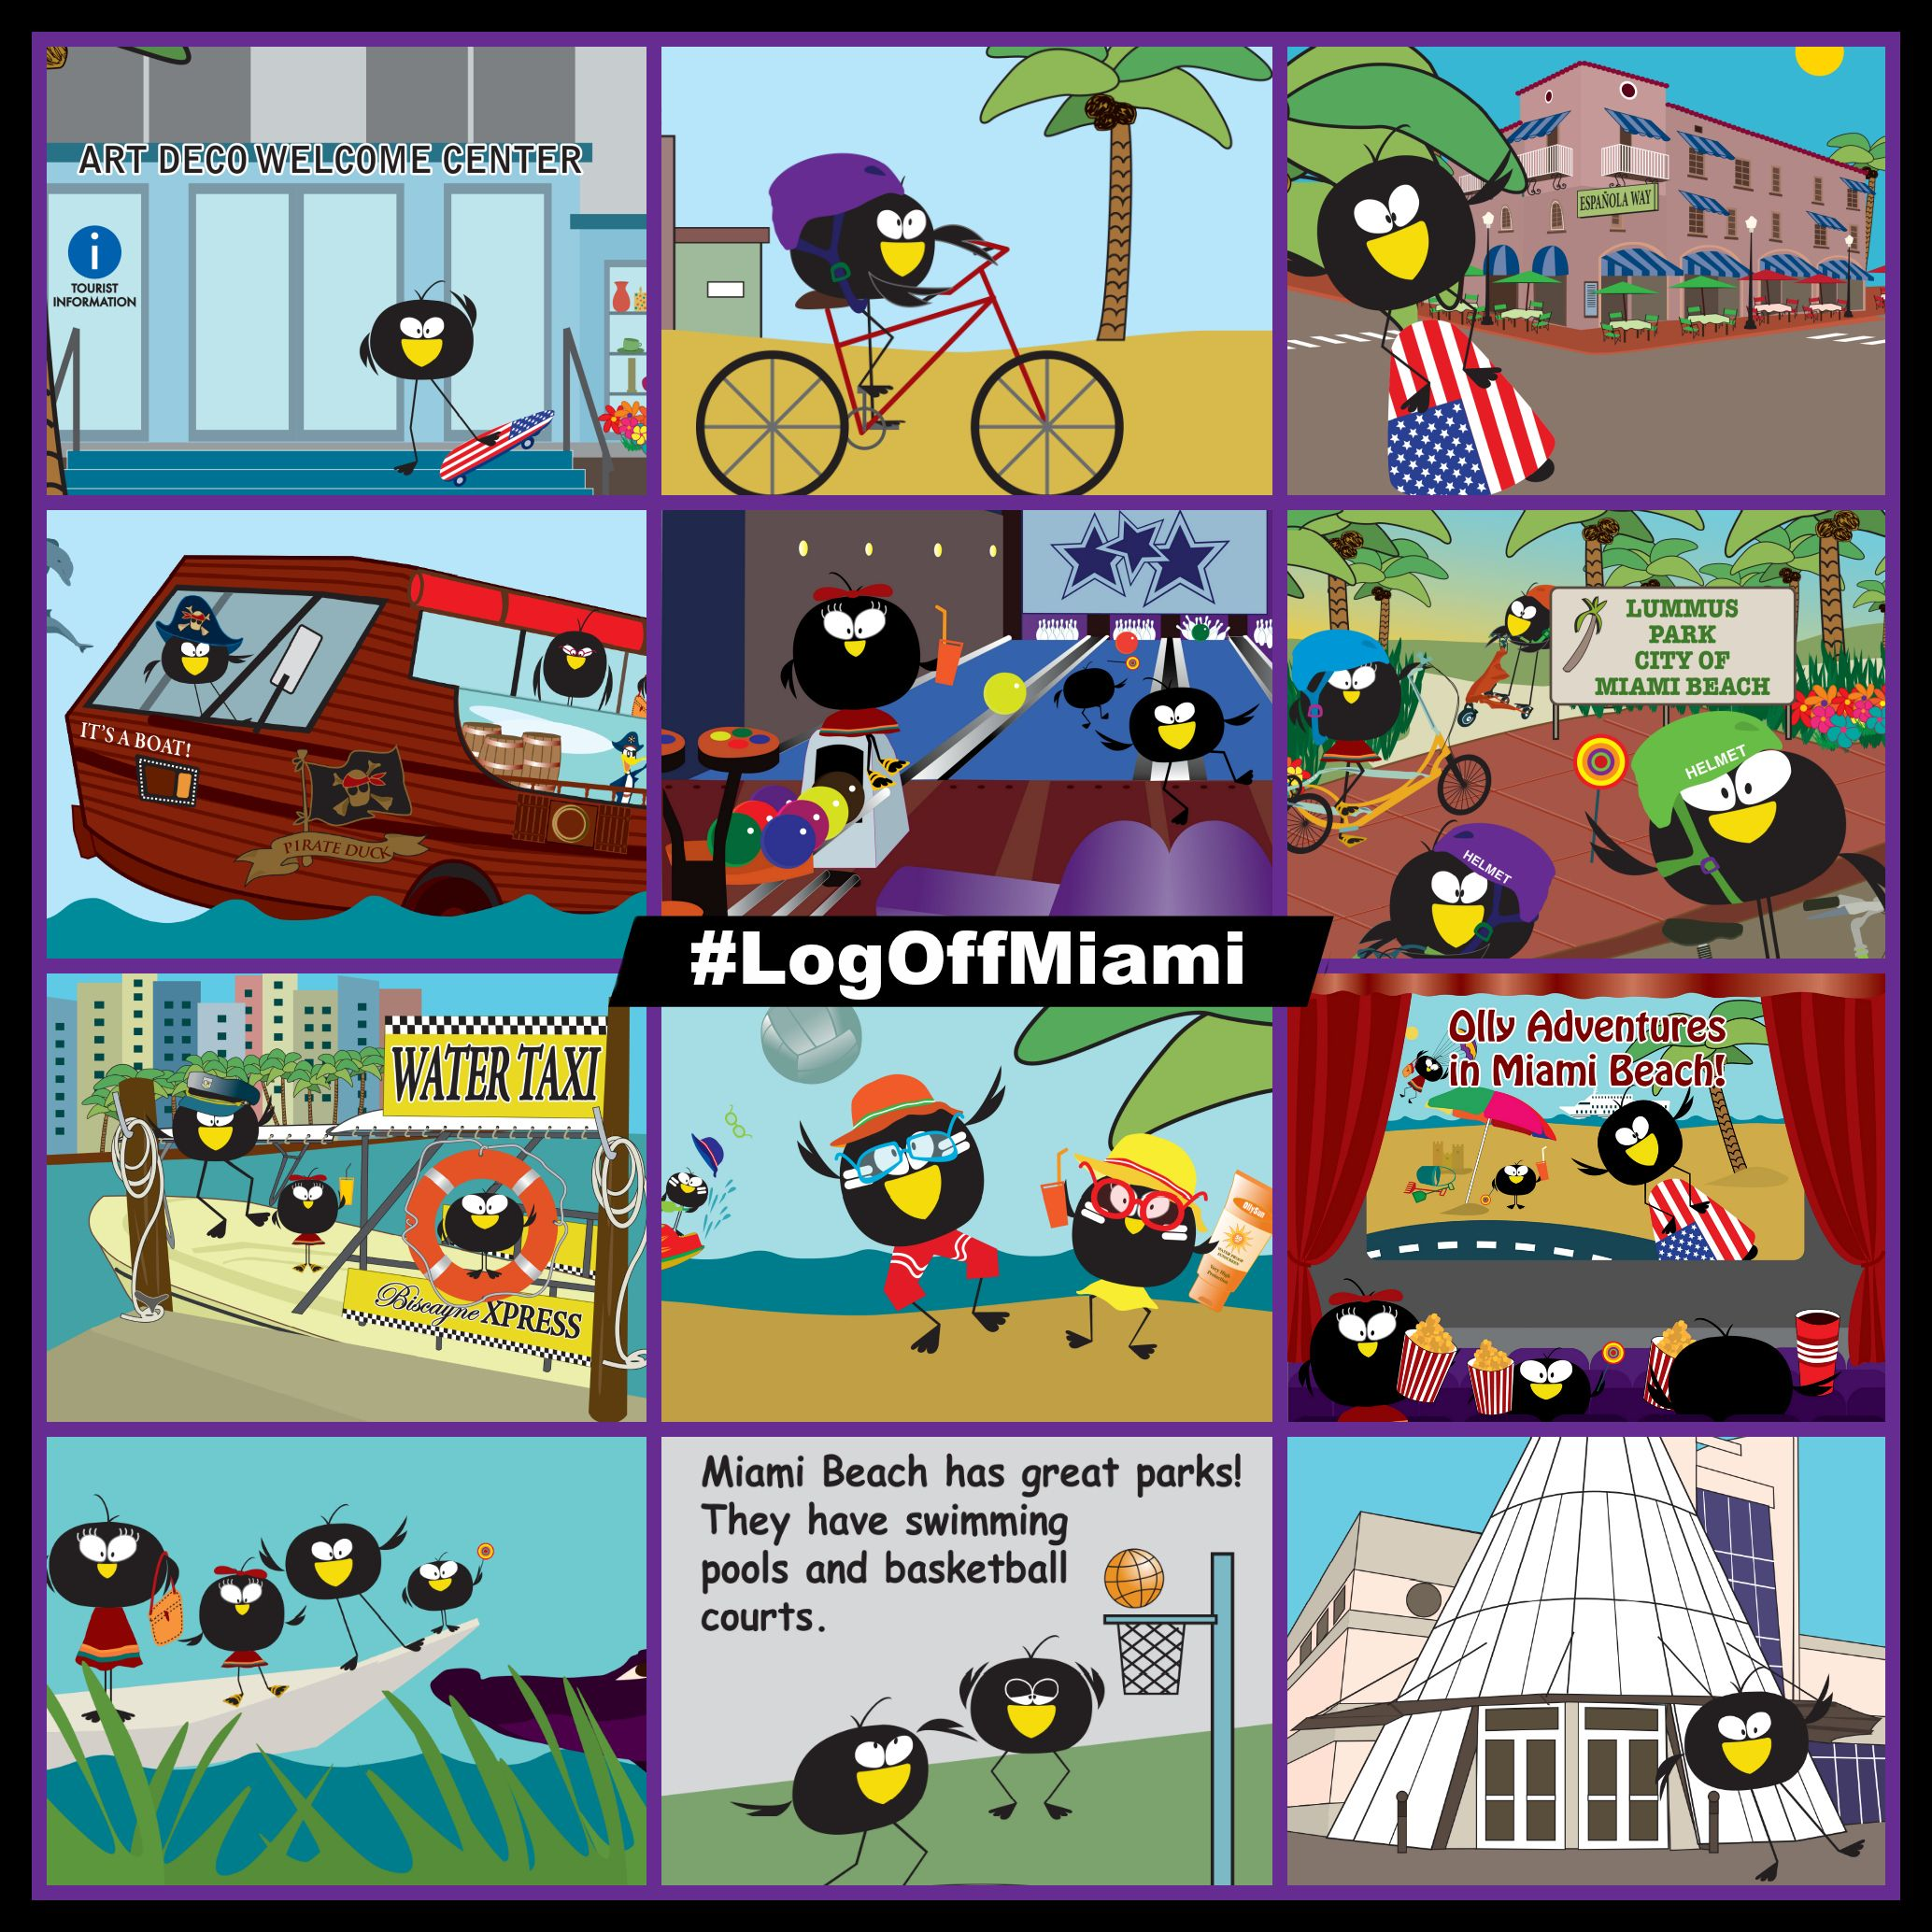 Olly Has A Full Calendar Of Events For Kids And Families Visiting Or Living In Miami